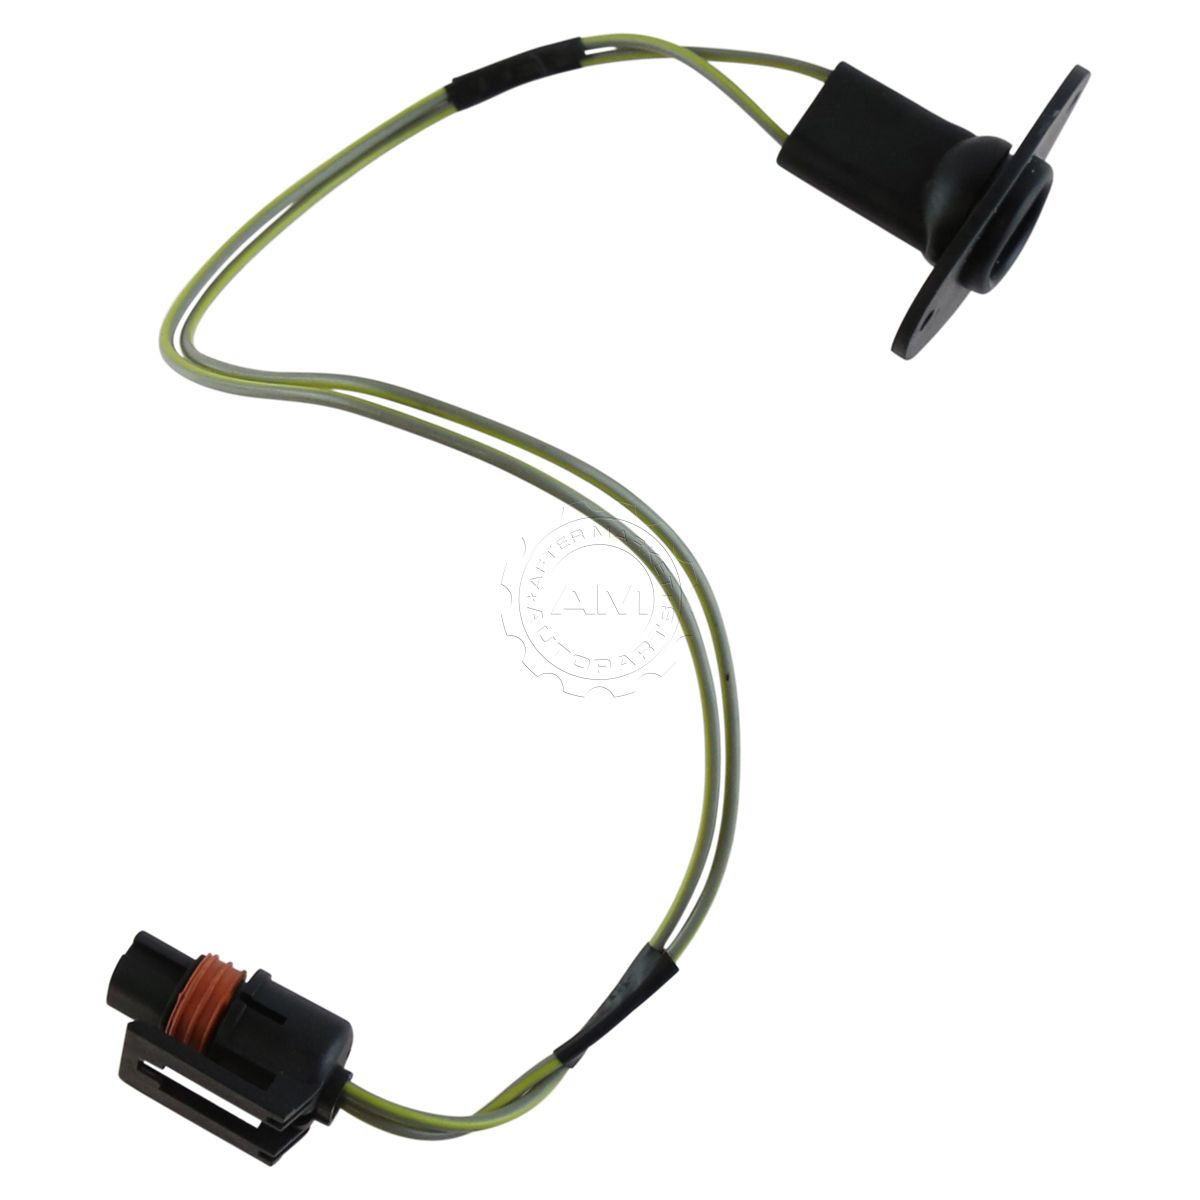 hight resolution of dorman license plate light wire harness rear for dodge ram 1500 2500 3500